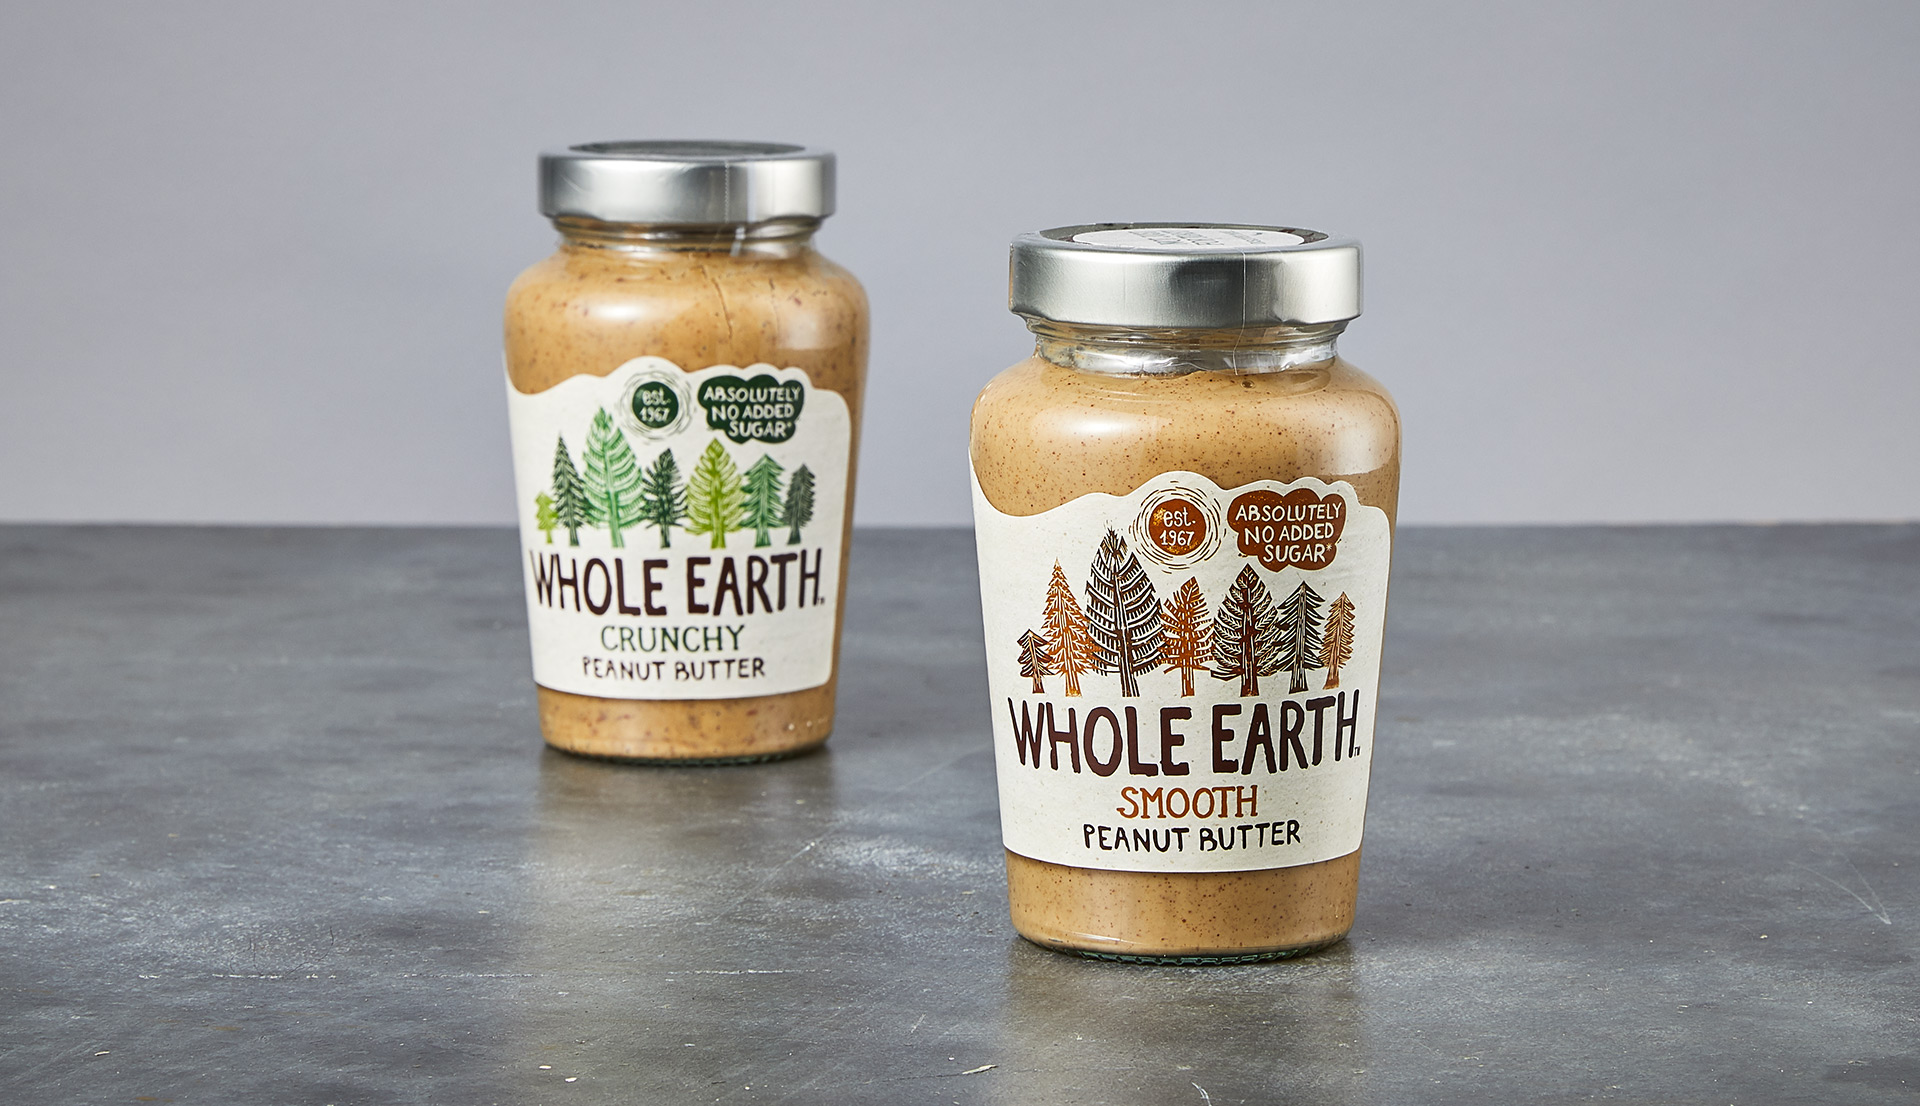 Whole_Earth_Food_Packaging_Repro_Artwork_4